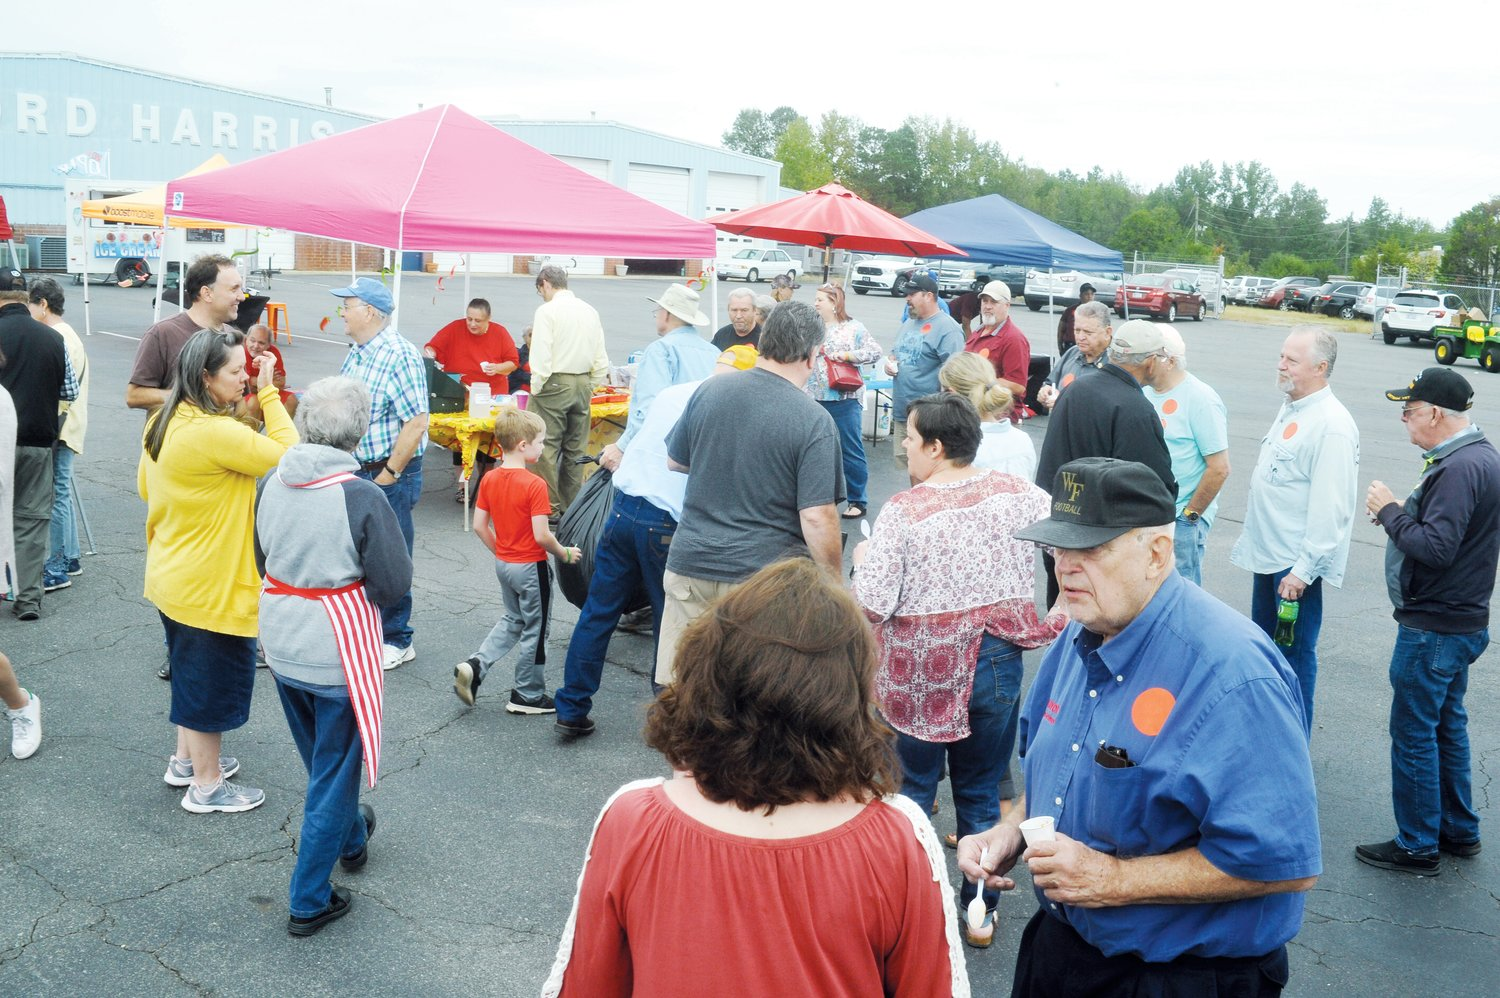 The crowd gathered for the Chatham Chili Challenge at Welford Harris Ford this Saturday. Guests were able to taste a variety of chili productions, using a variety of ingredients.